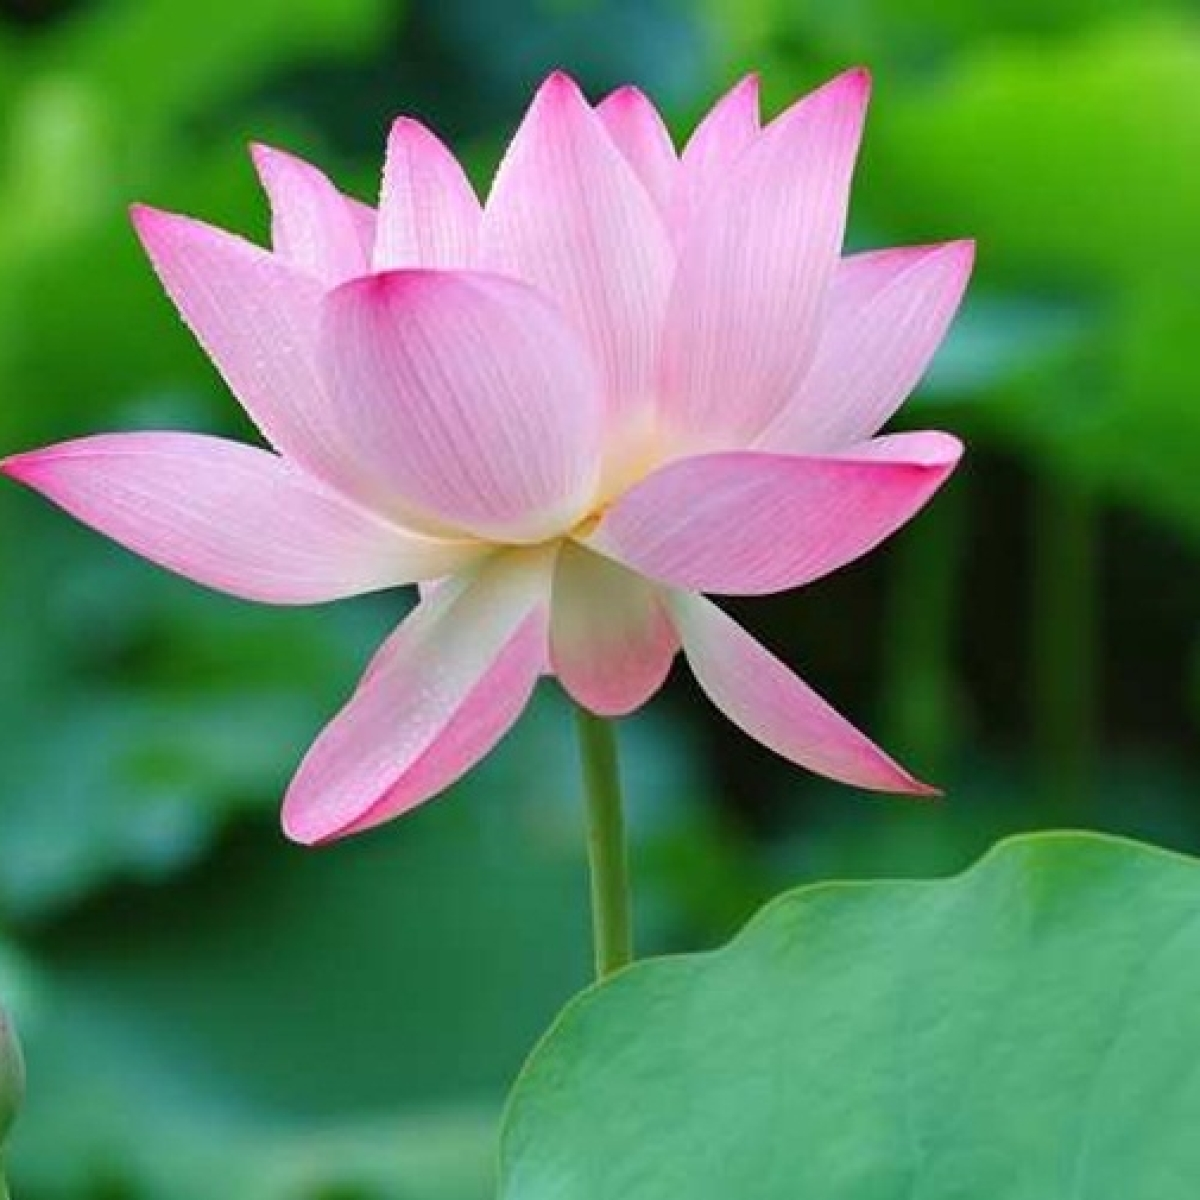 Dear MEA, the lotus is not India's National Flower